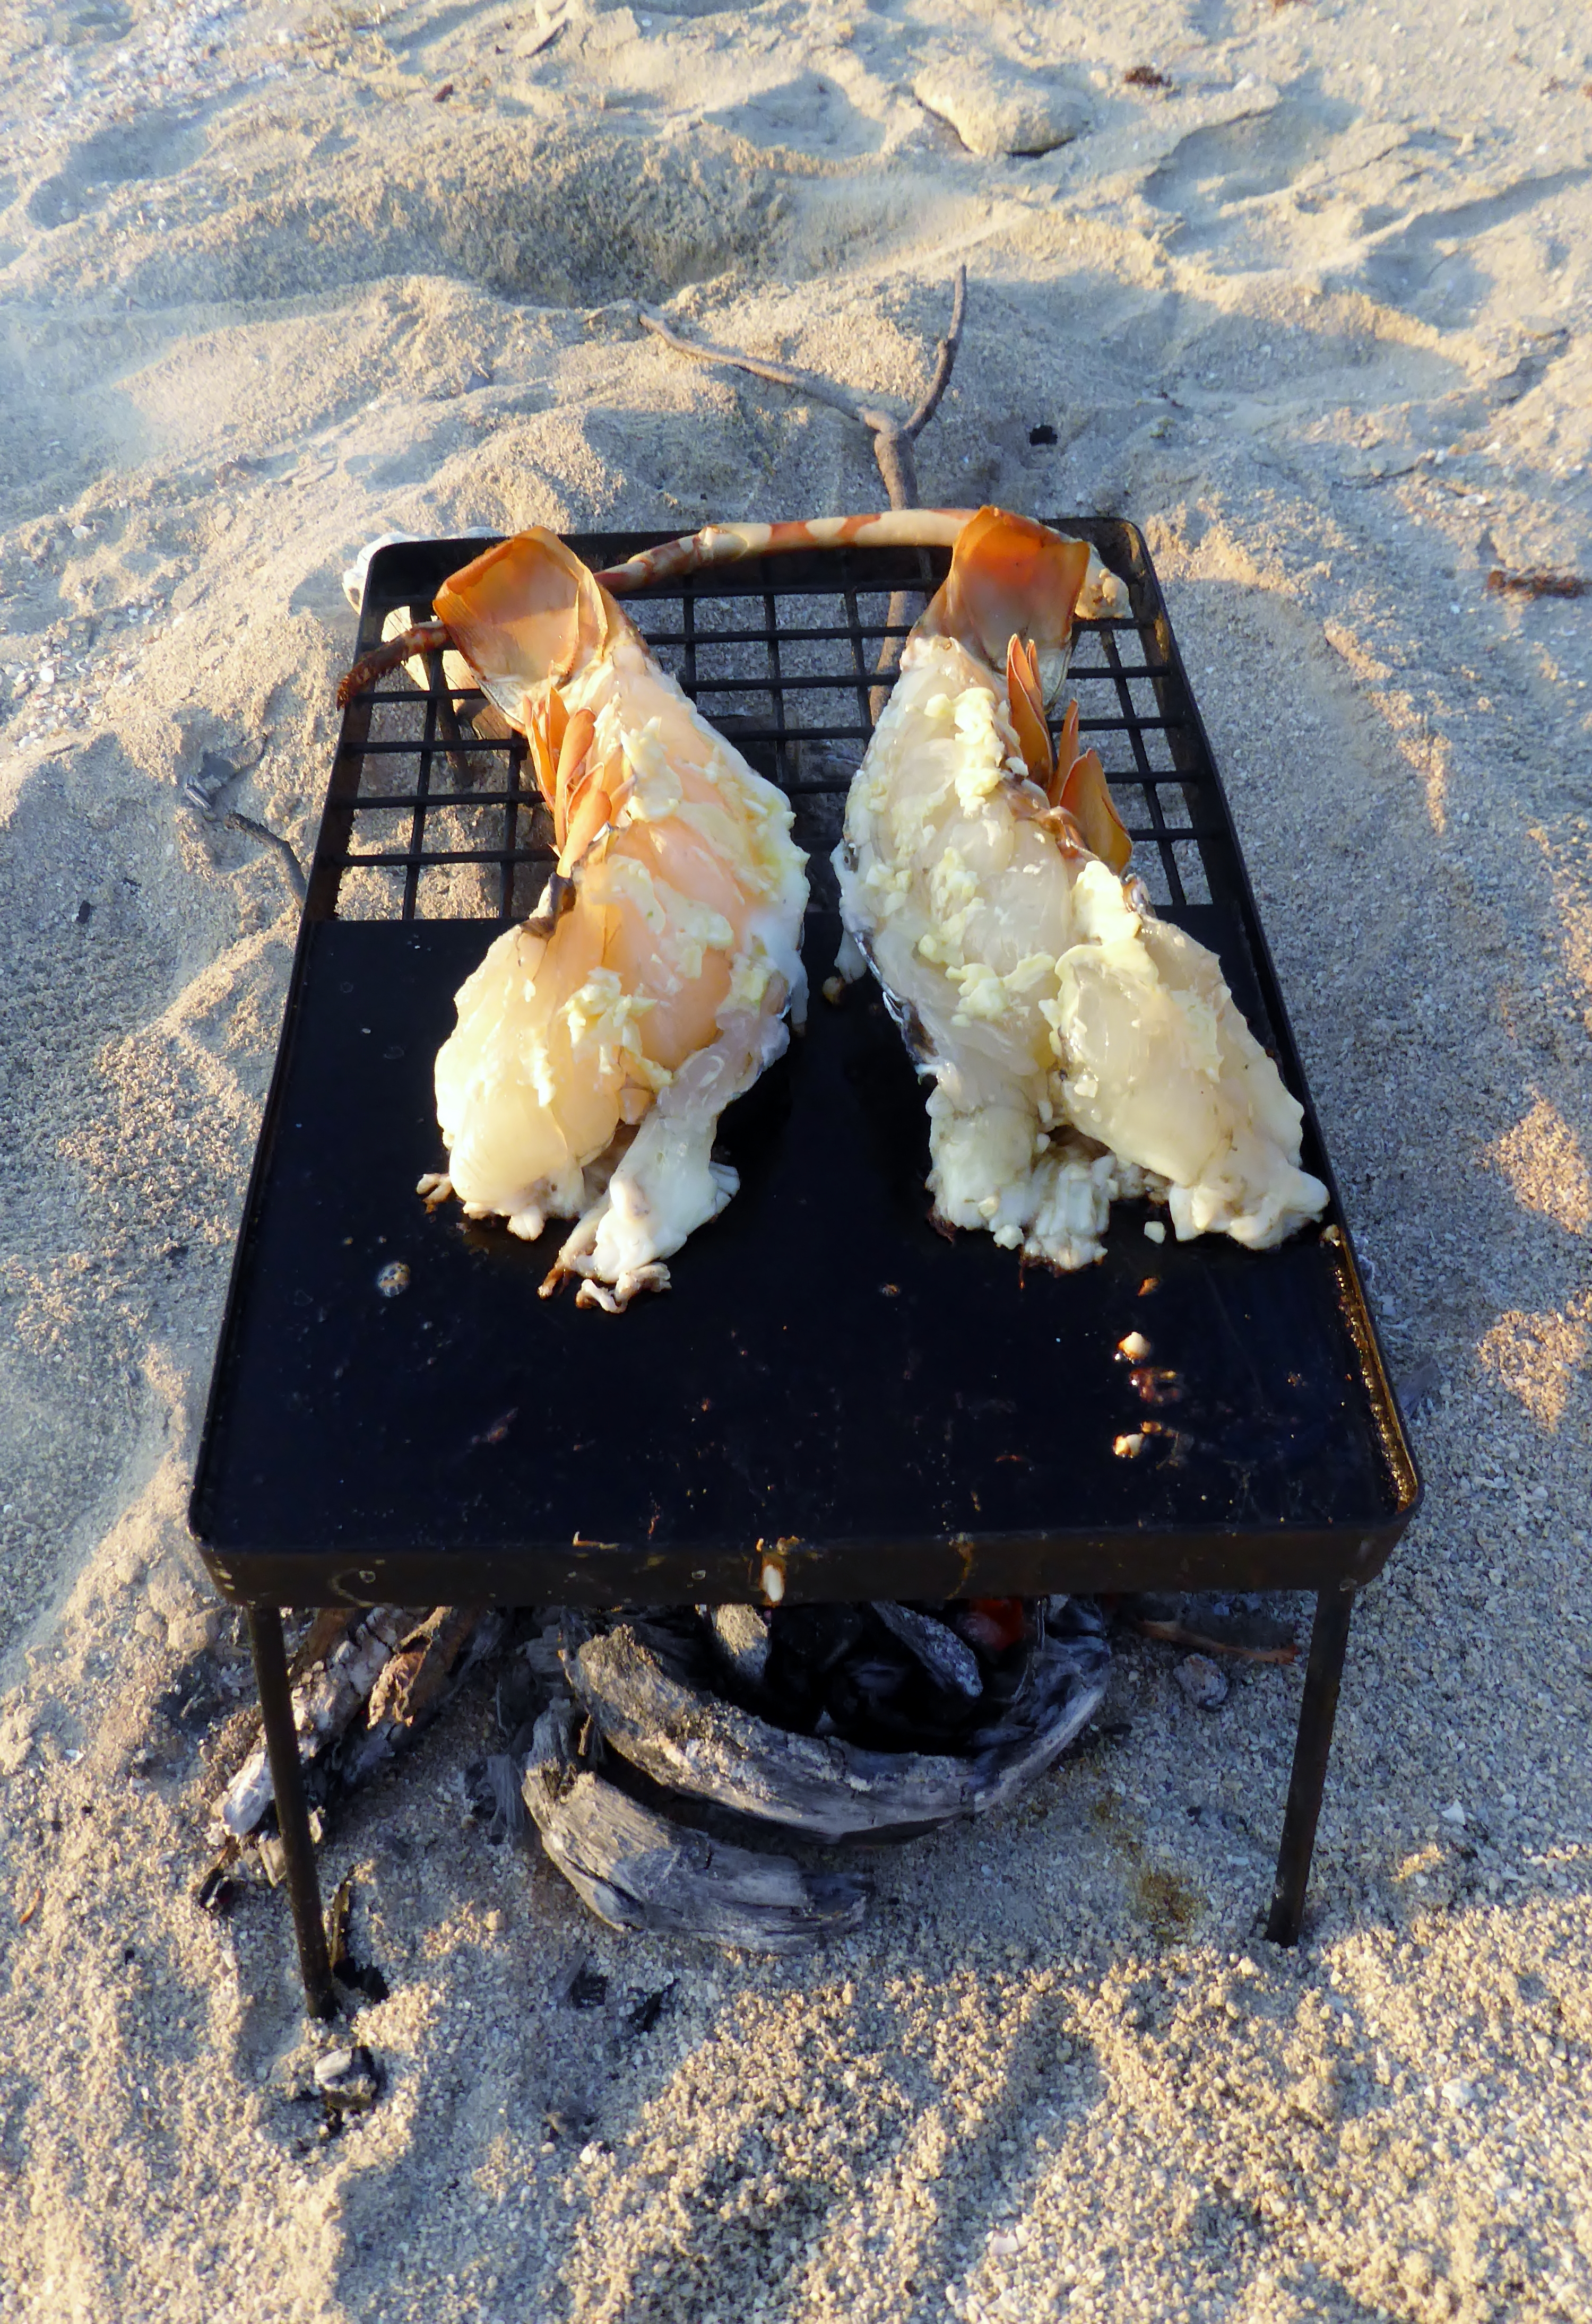 barbecue crayfish over a fire on the beach